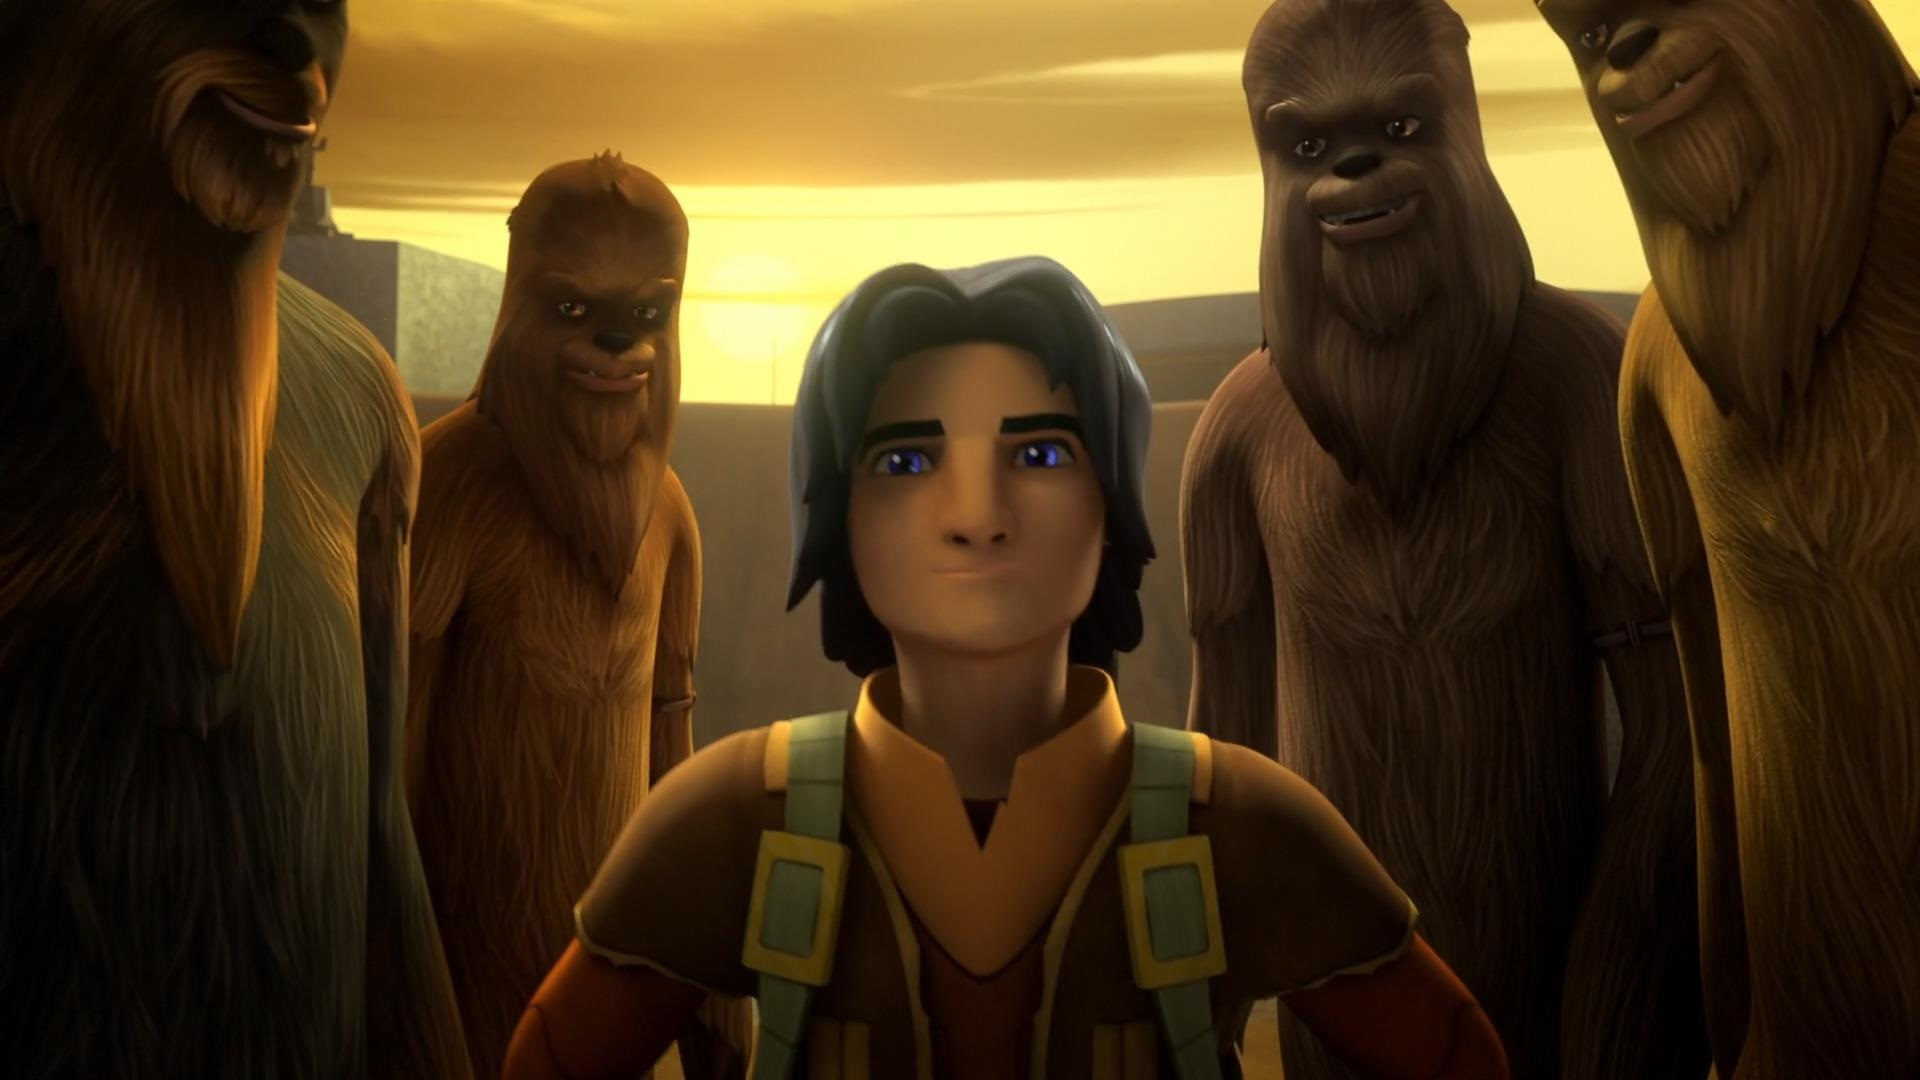 ARGENTeaM Star Wars Rebels 2014 S01E01 Spark Of